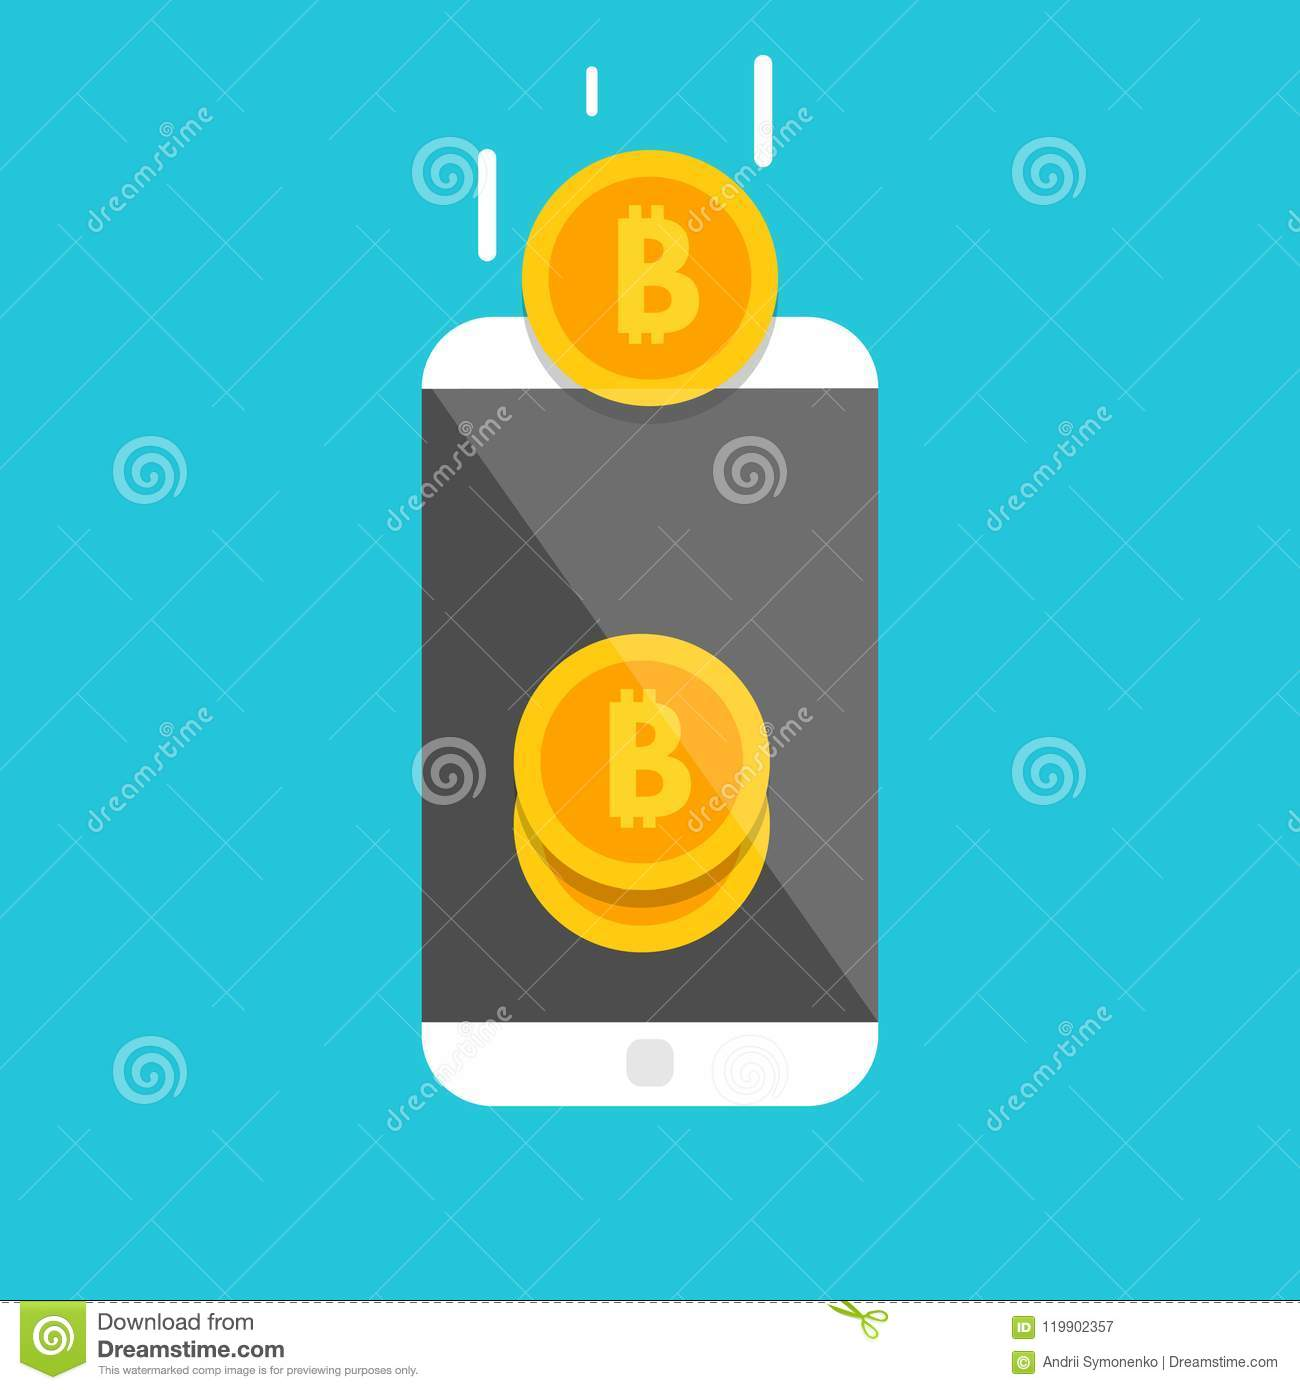 how to use cryptocurrency to transfer money